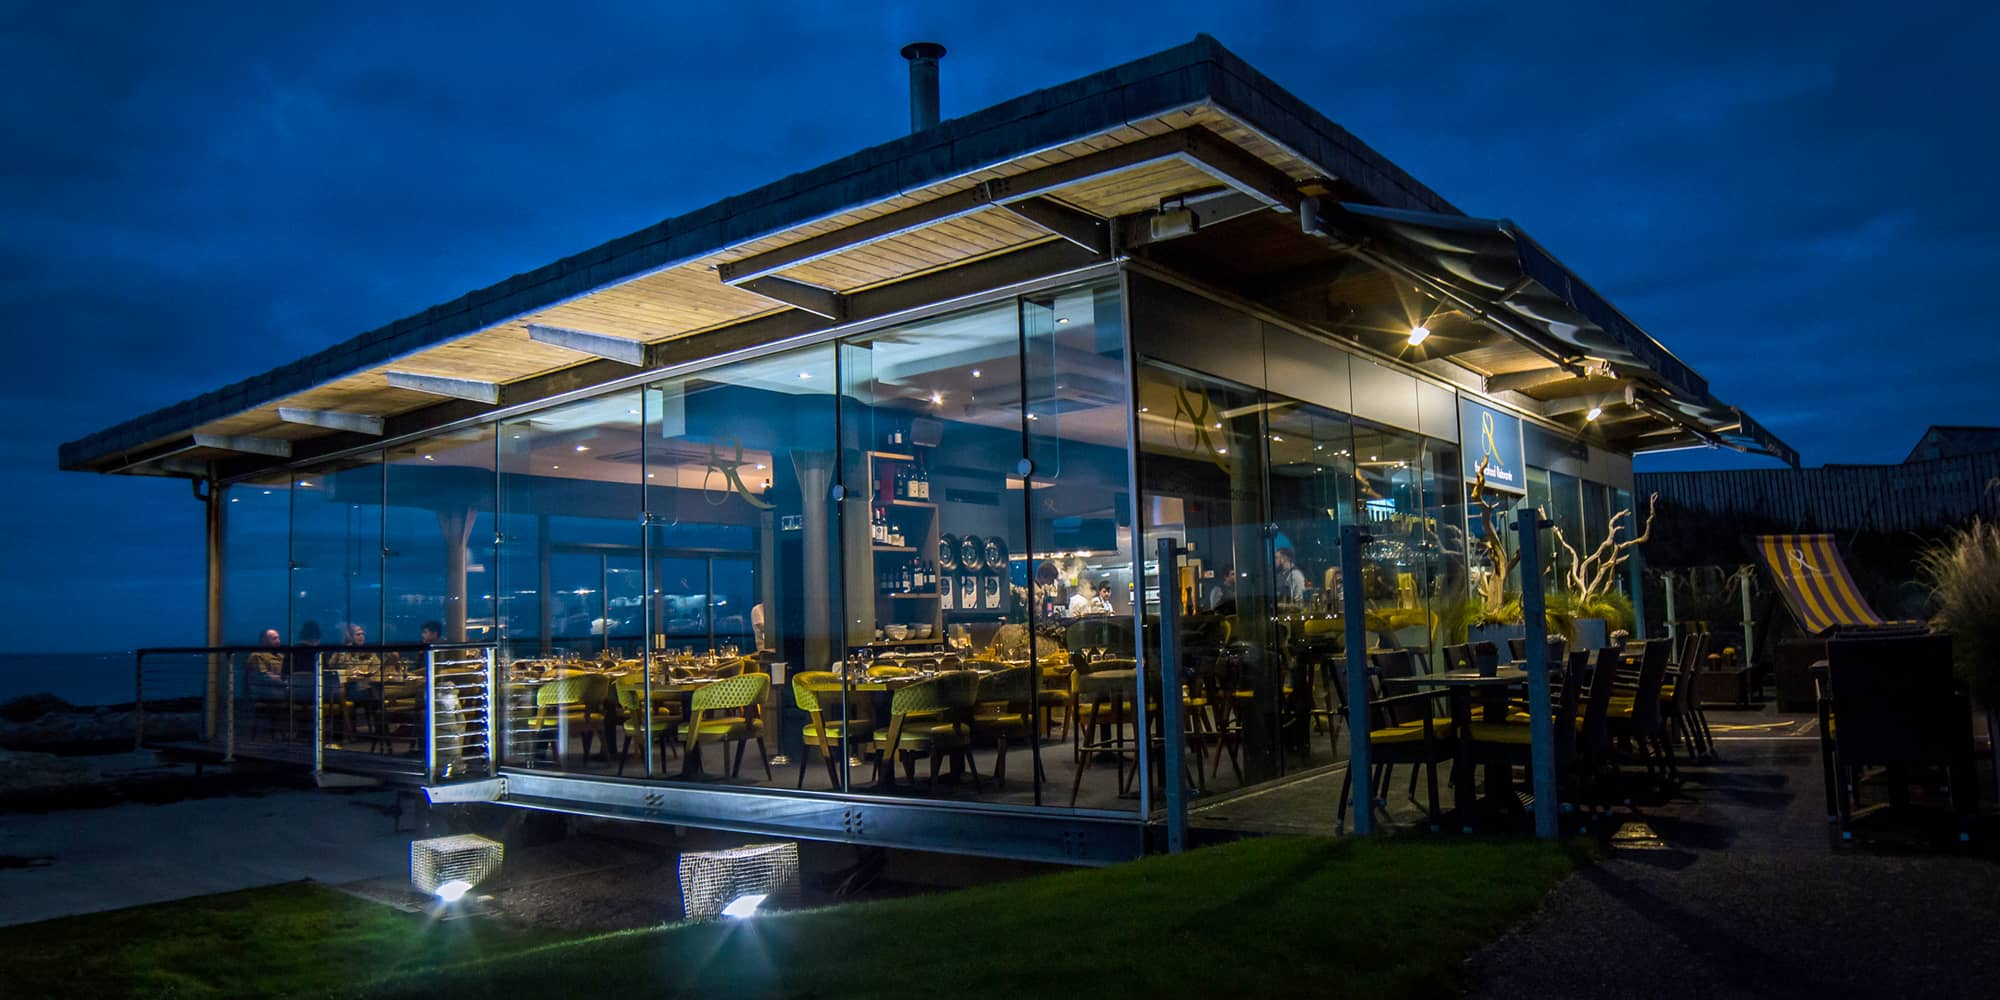 The Seafood Ristorante Scottish Restaurant Of The Year 2019